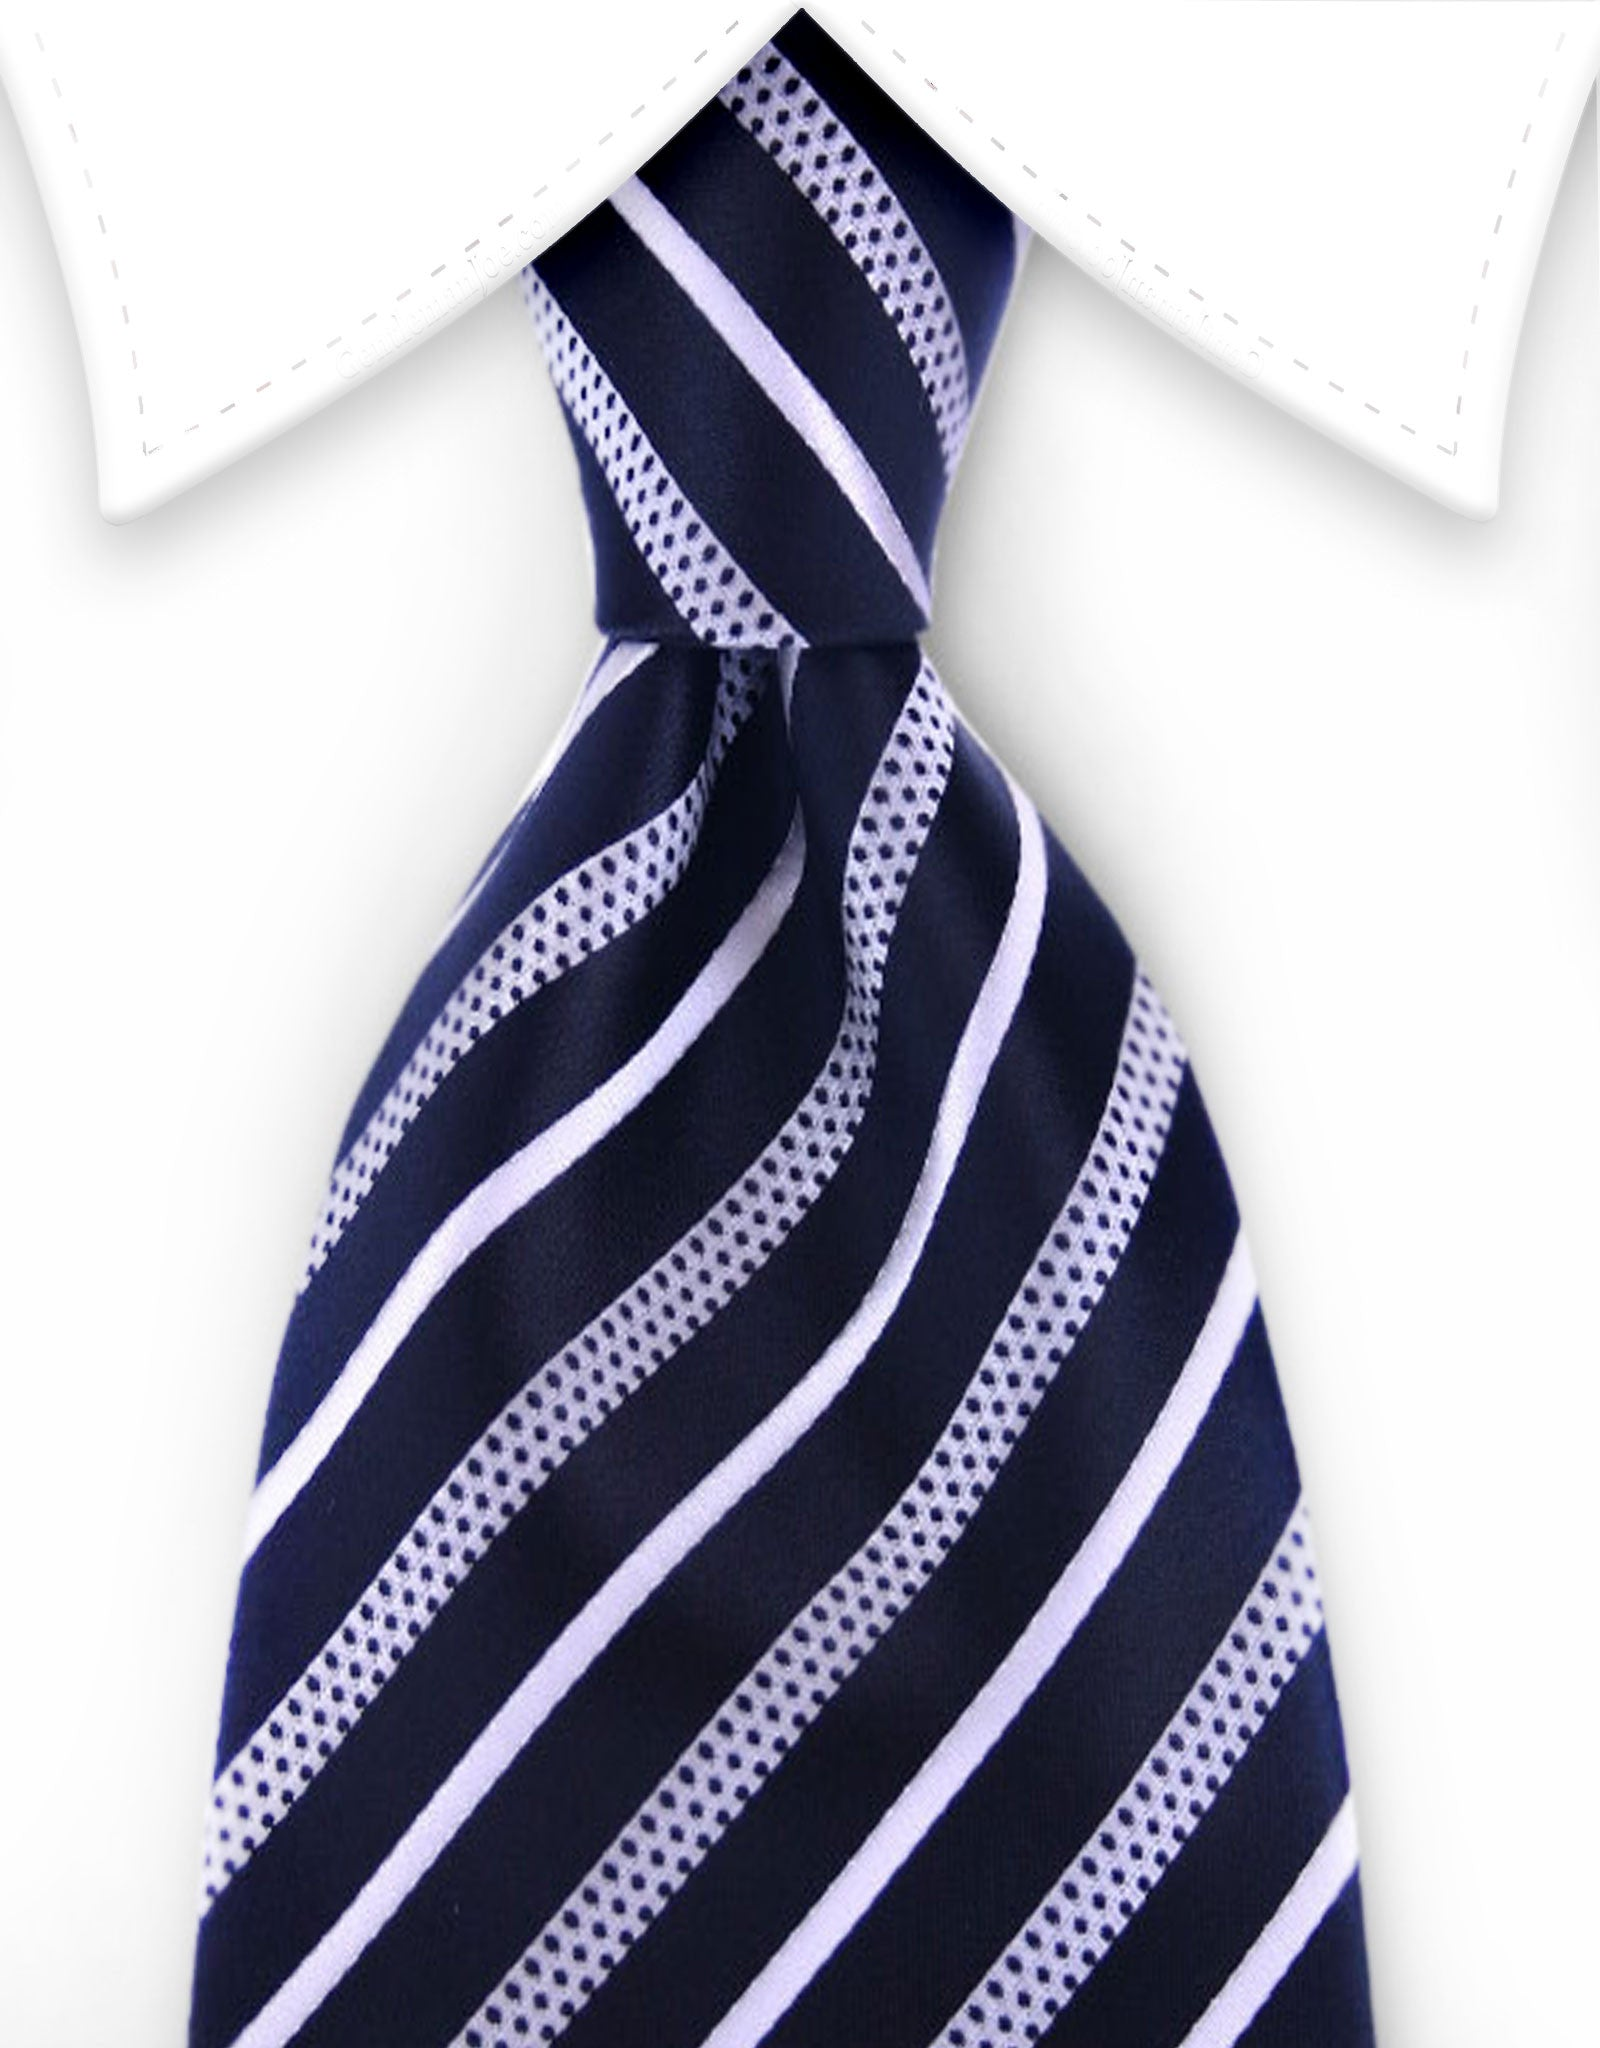 Black and white necktie